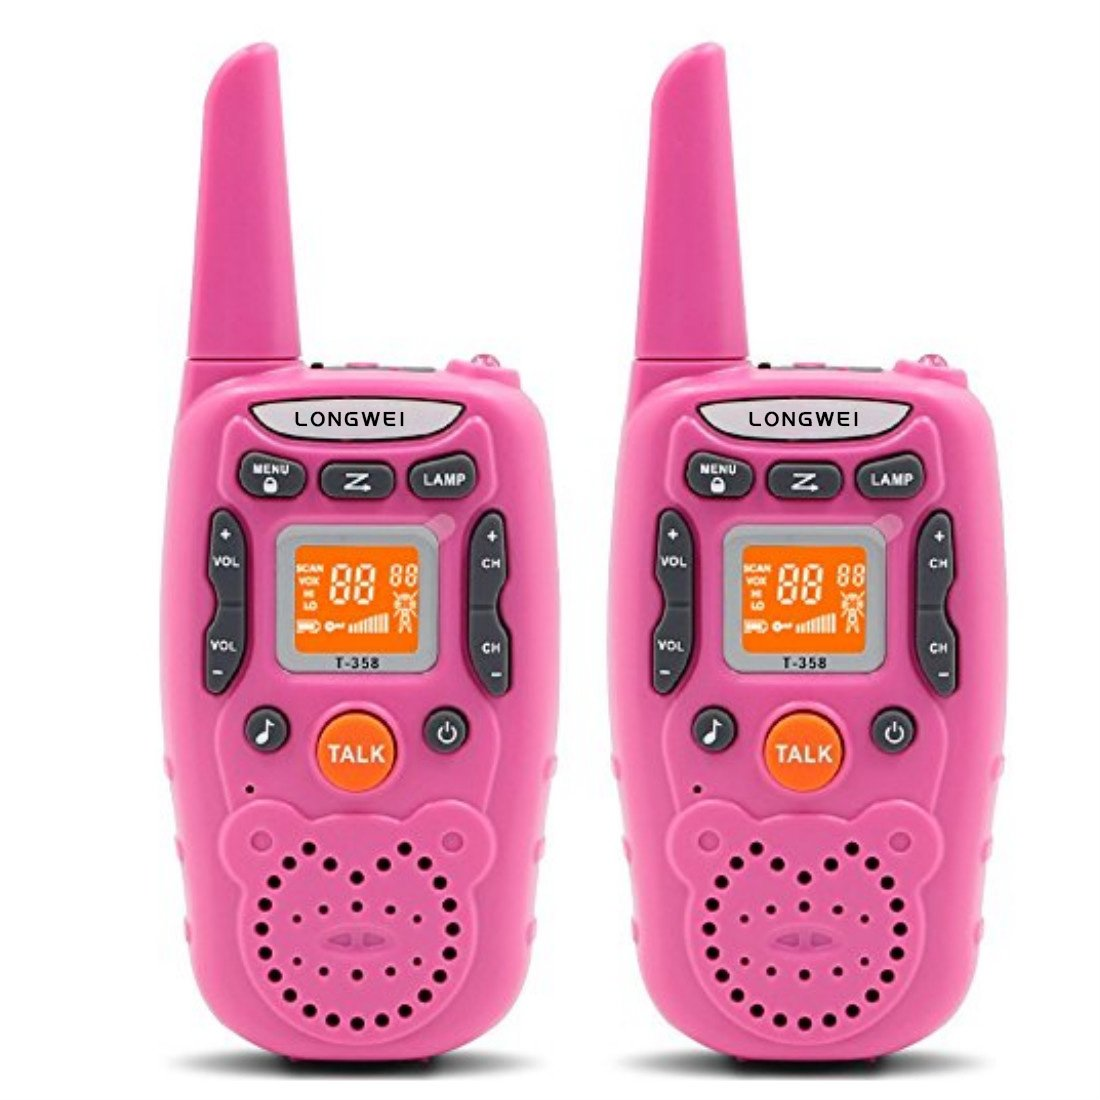 Kids Walkie Talkie Set 0.5W FRS/GMRS 22 Channel Two Way Radio Up to 3 Km Range for Children Camping Hiking(2PCS Pink) by longwei (Image #2)